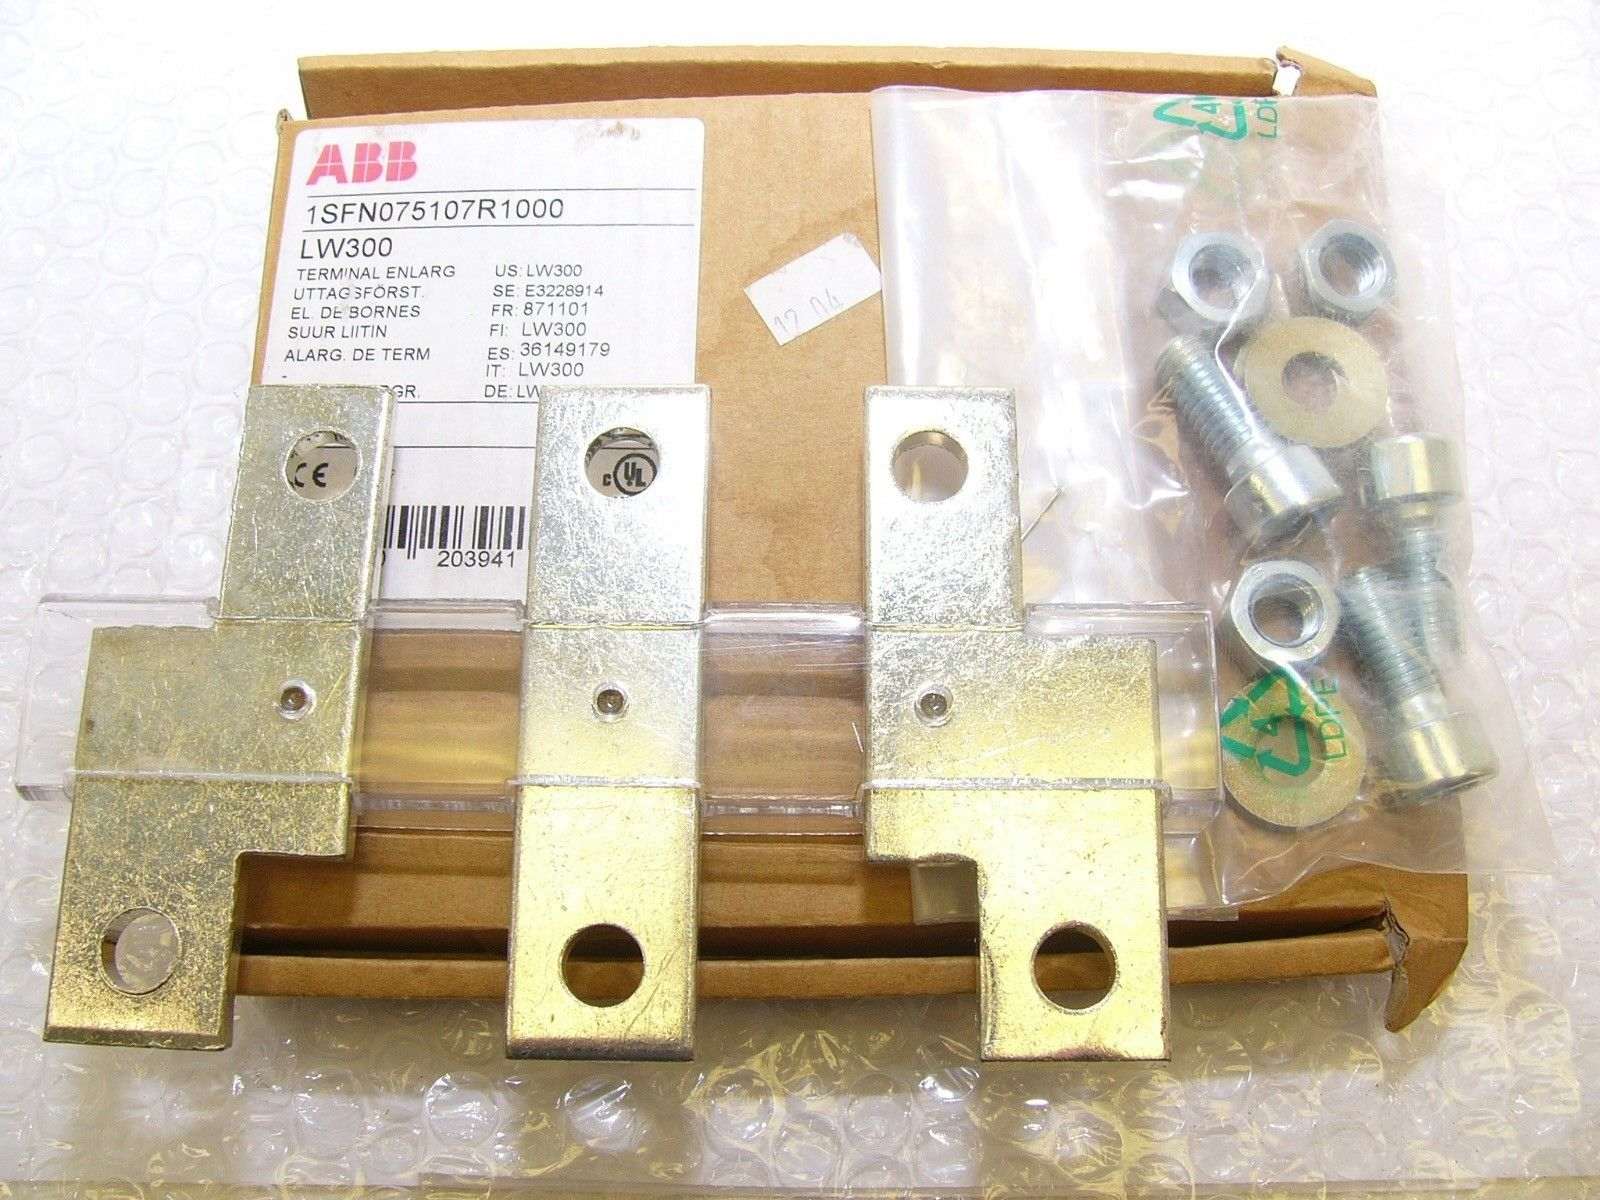 GENUINE ABB ZW300 SPRING & CONTACT KIT NEW! FAST SHIP! (B185) 1